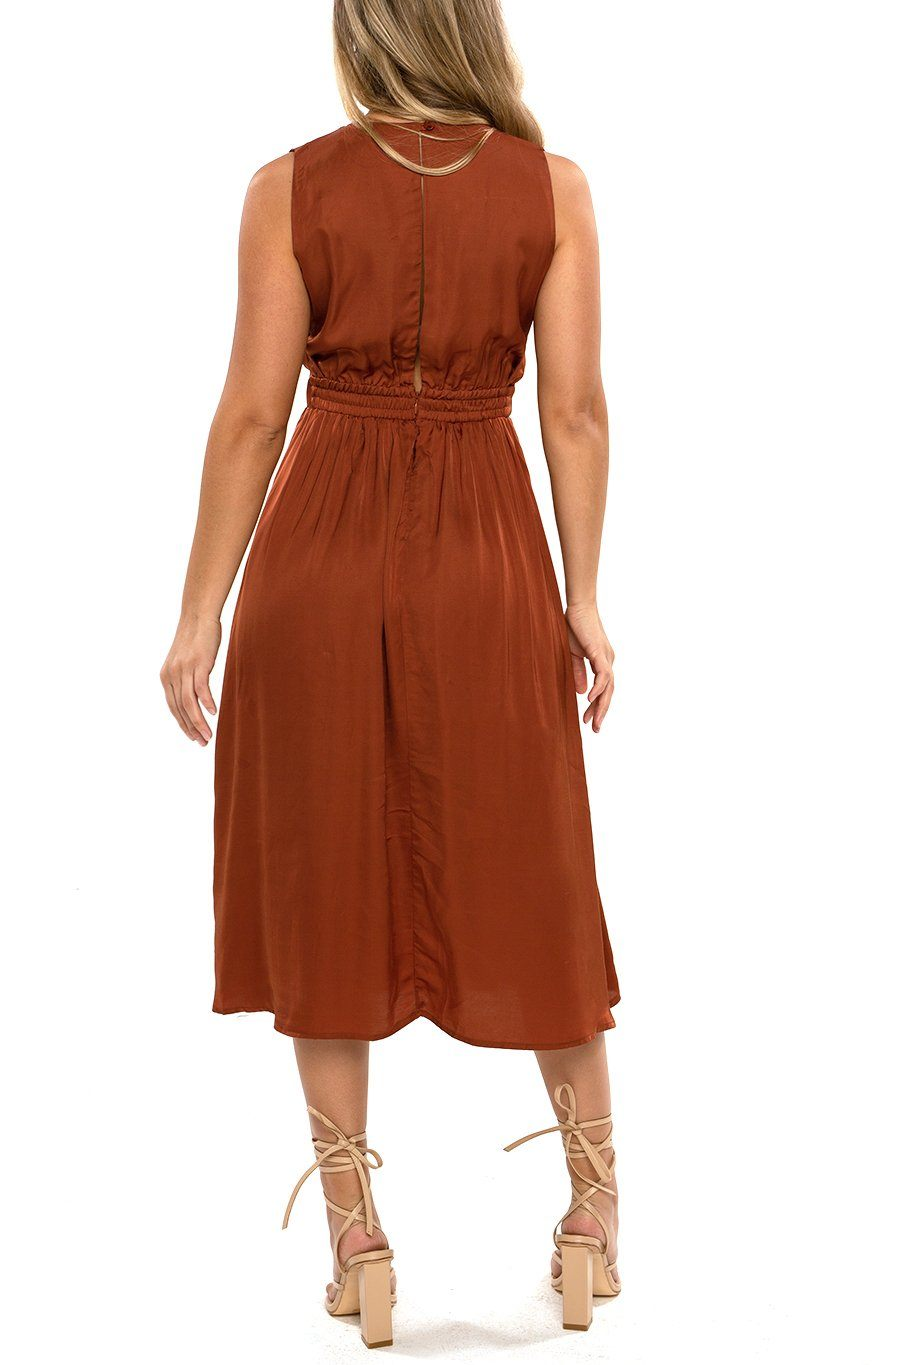 Magnolia Midi Dress - Satin Rust - Shore